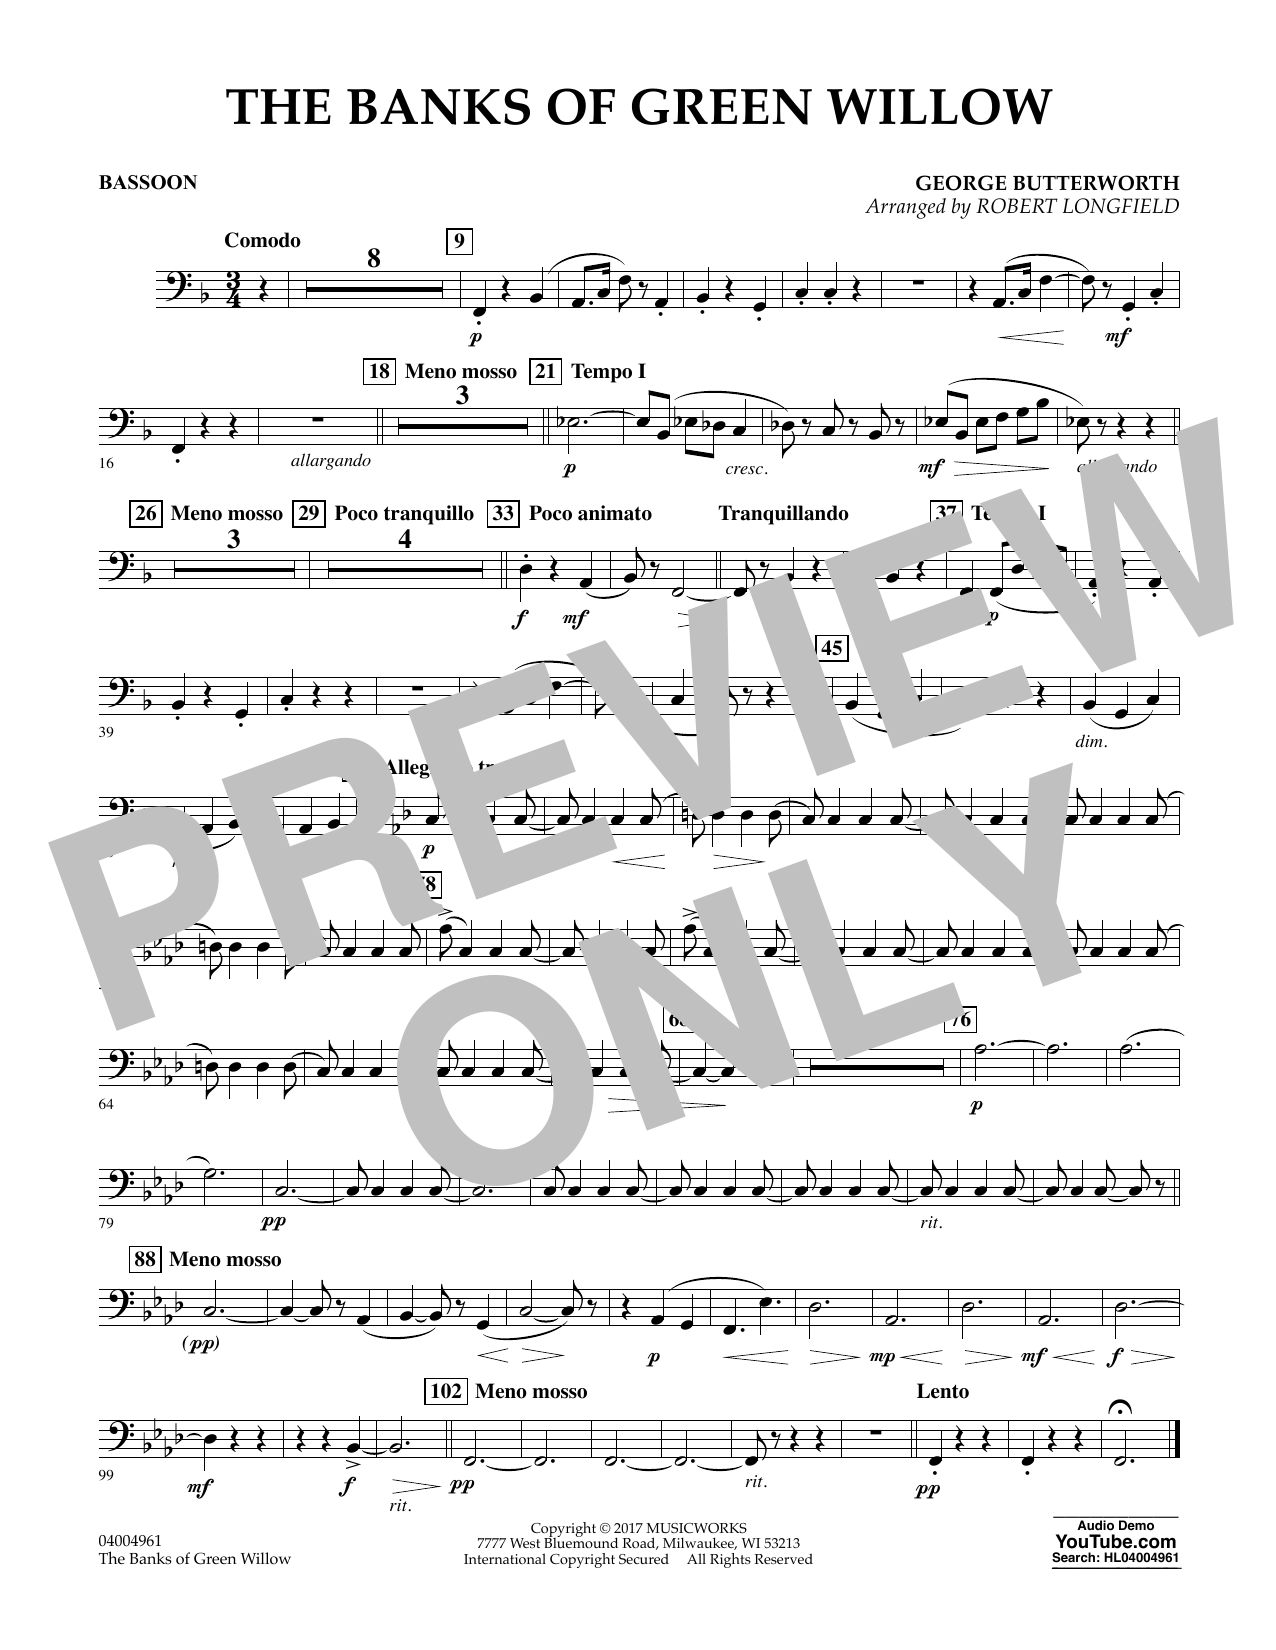 The Banks of Green Willow - Bassoon Sheet Music